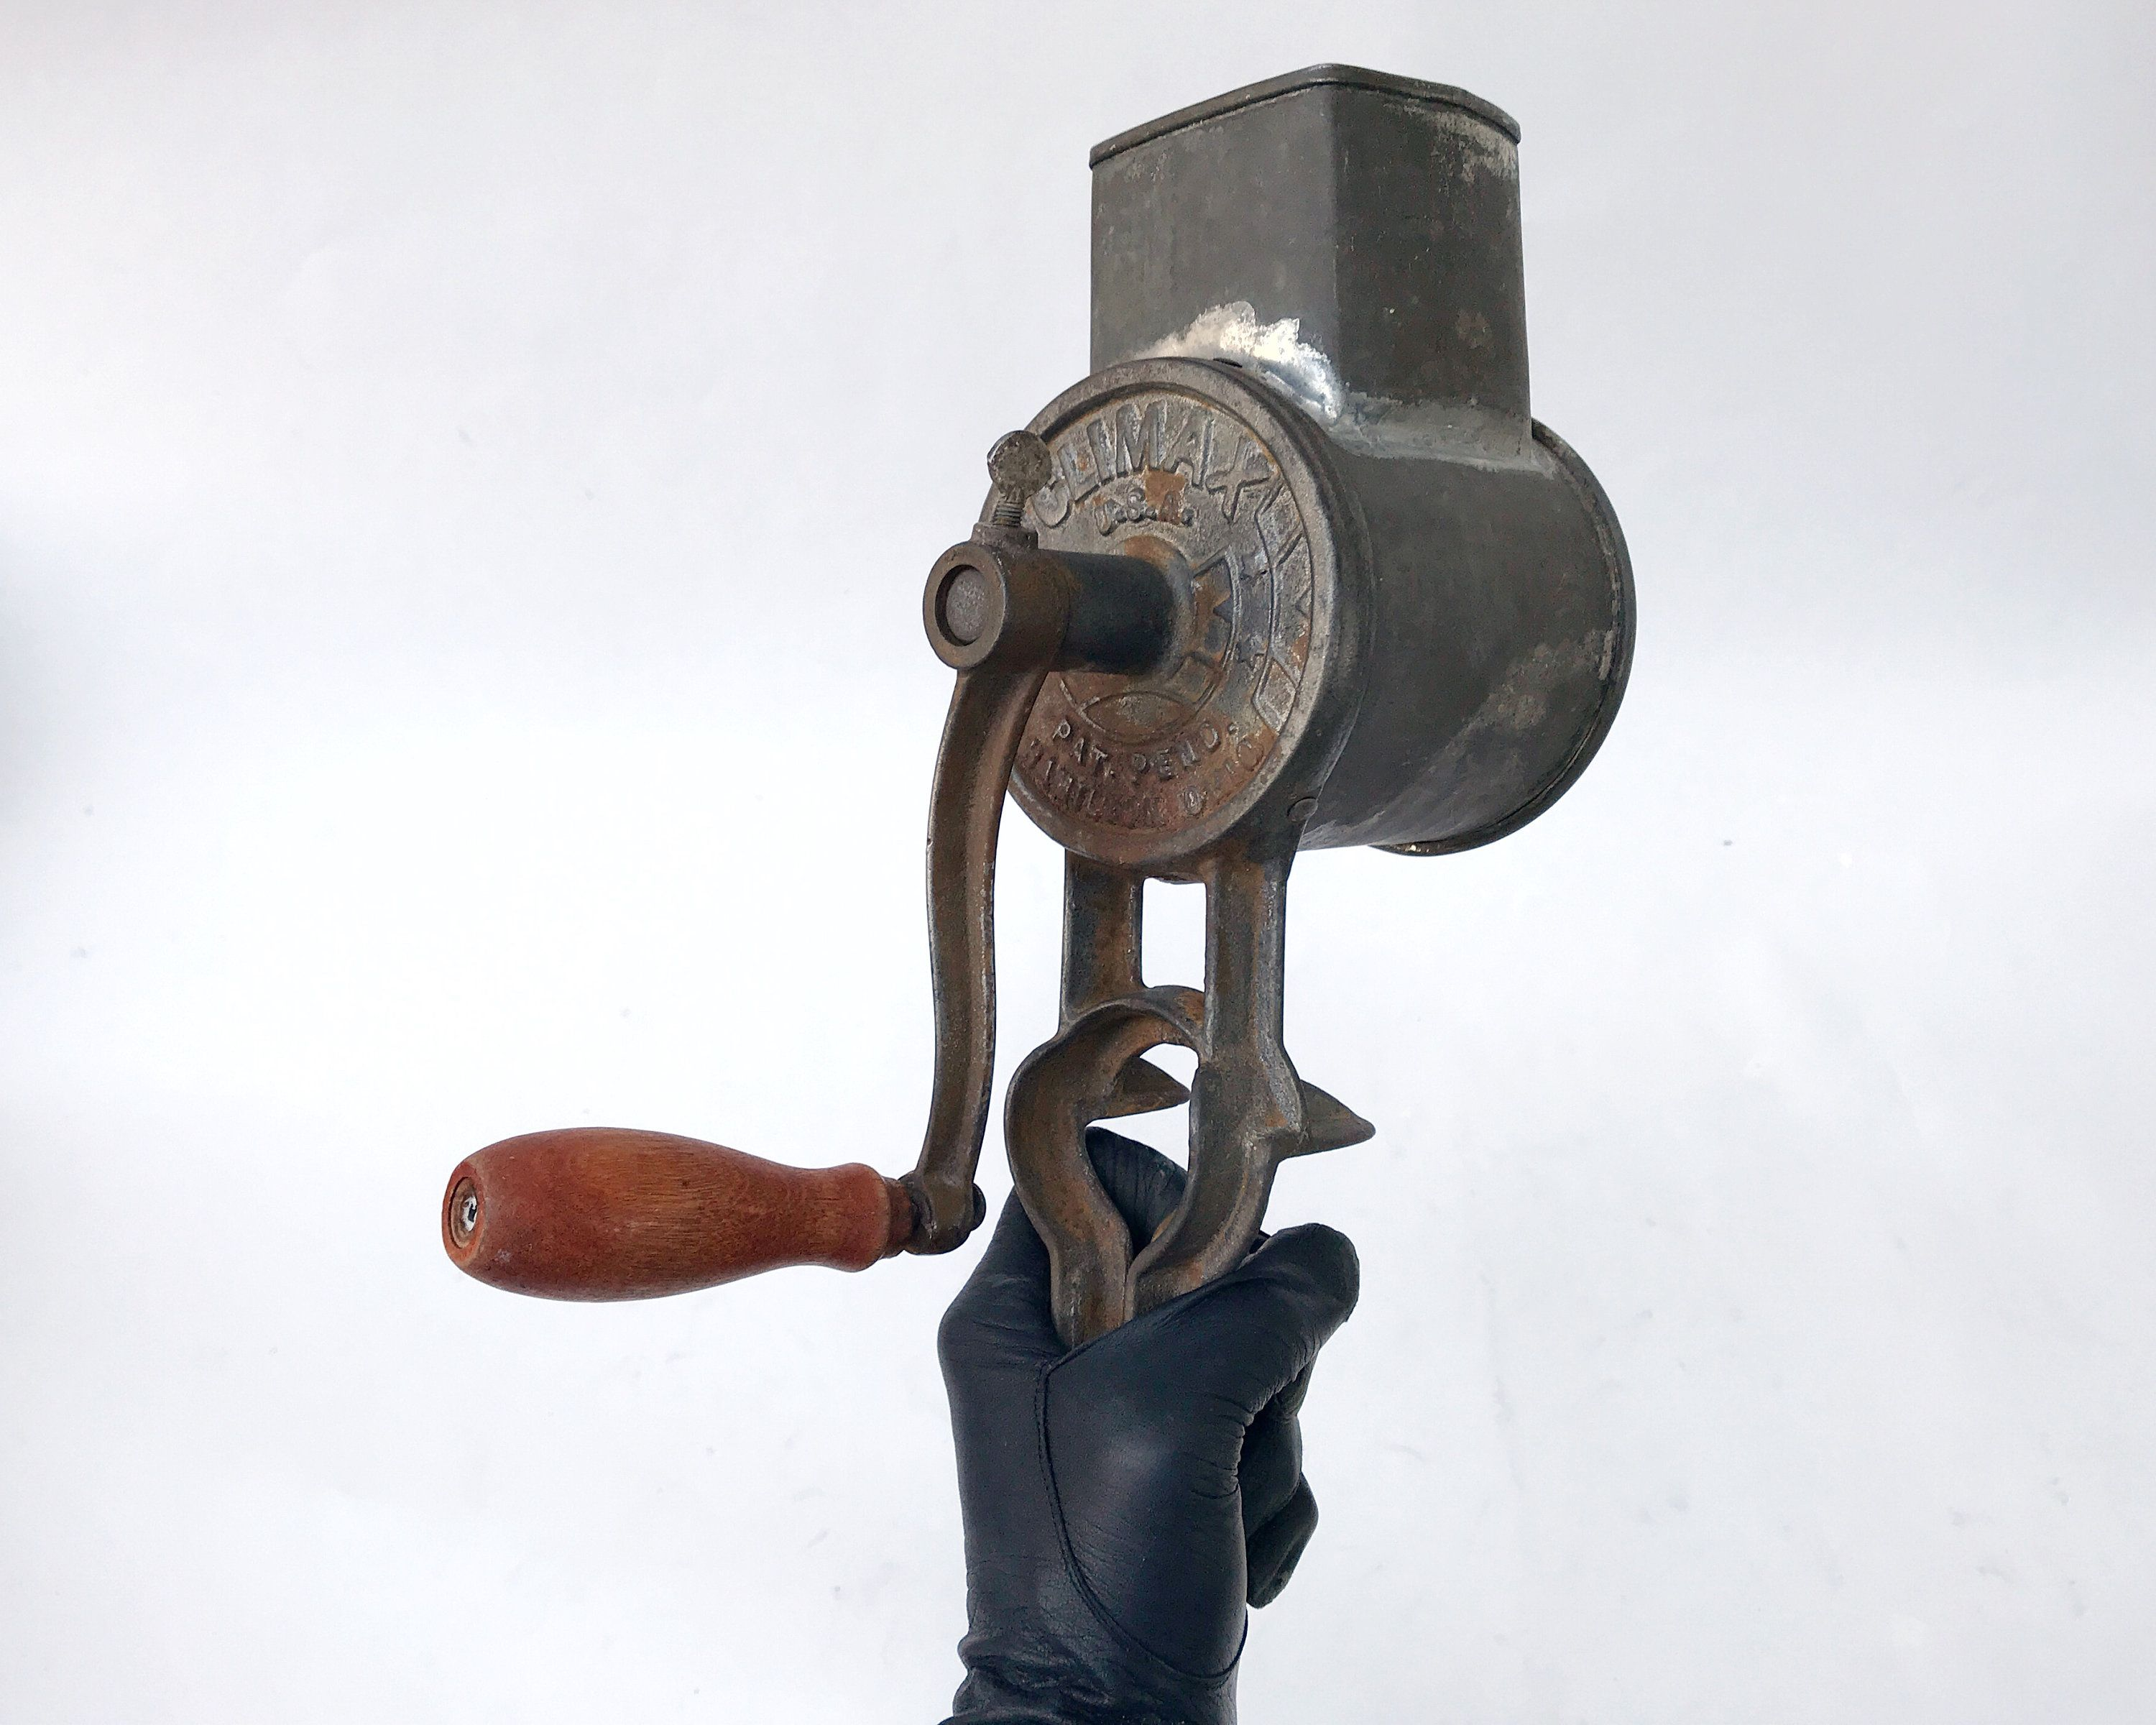 Vintage Climax Food Grinder Cheese Grater Or Meat Grinder Circa 1920s 1930s Meat Grinder Cheese Grater Bottle Opener Wall